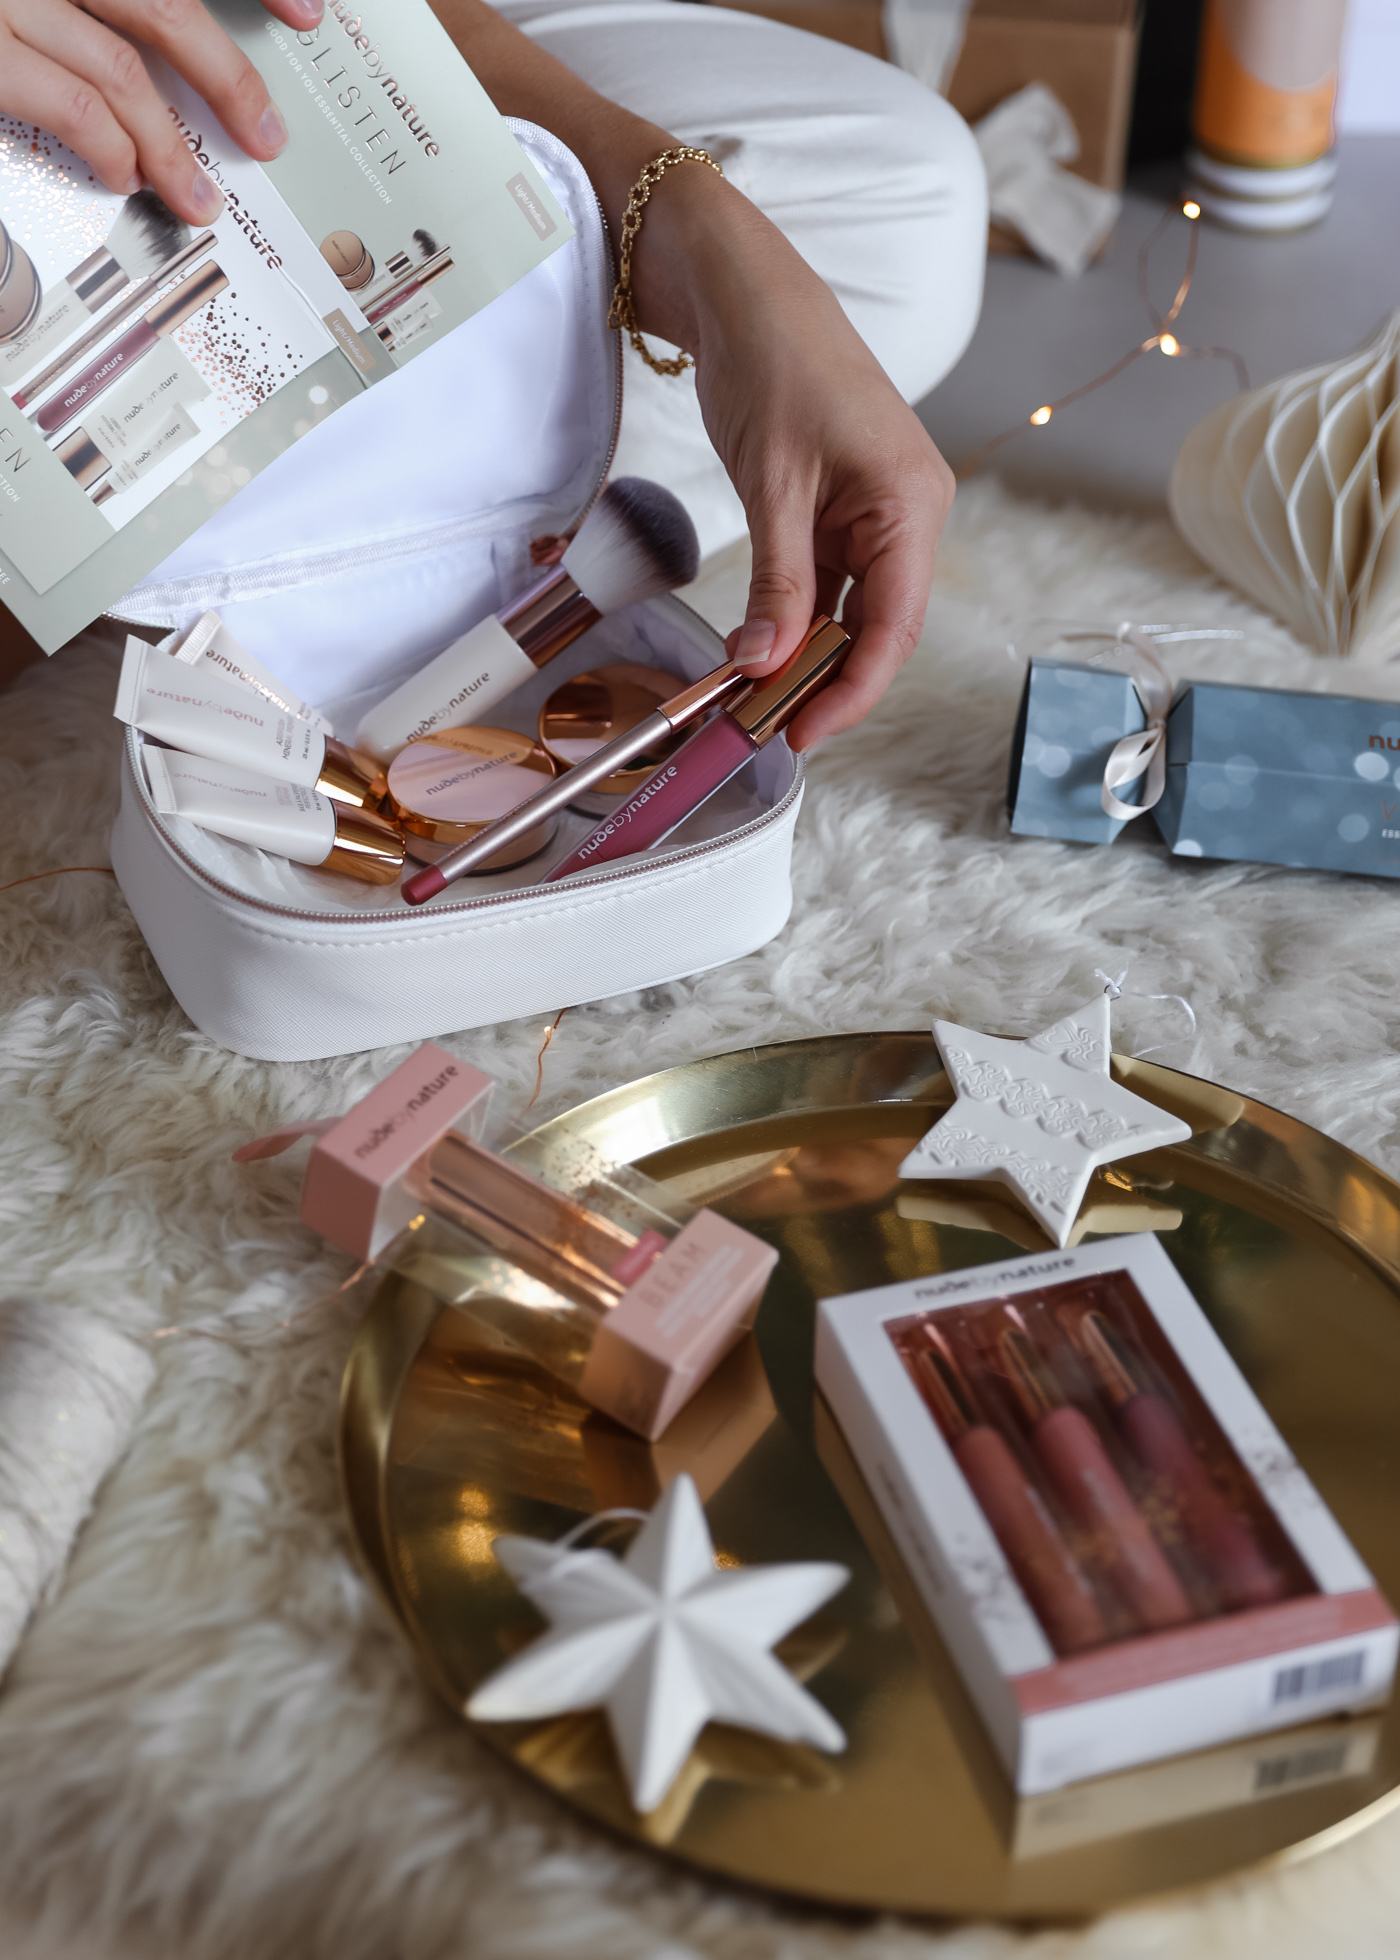 beautiful nude by nature gift ideas for Christmas